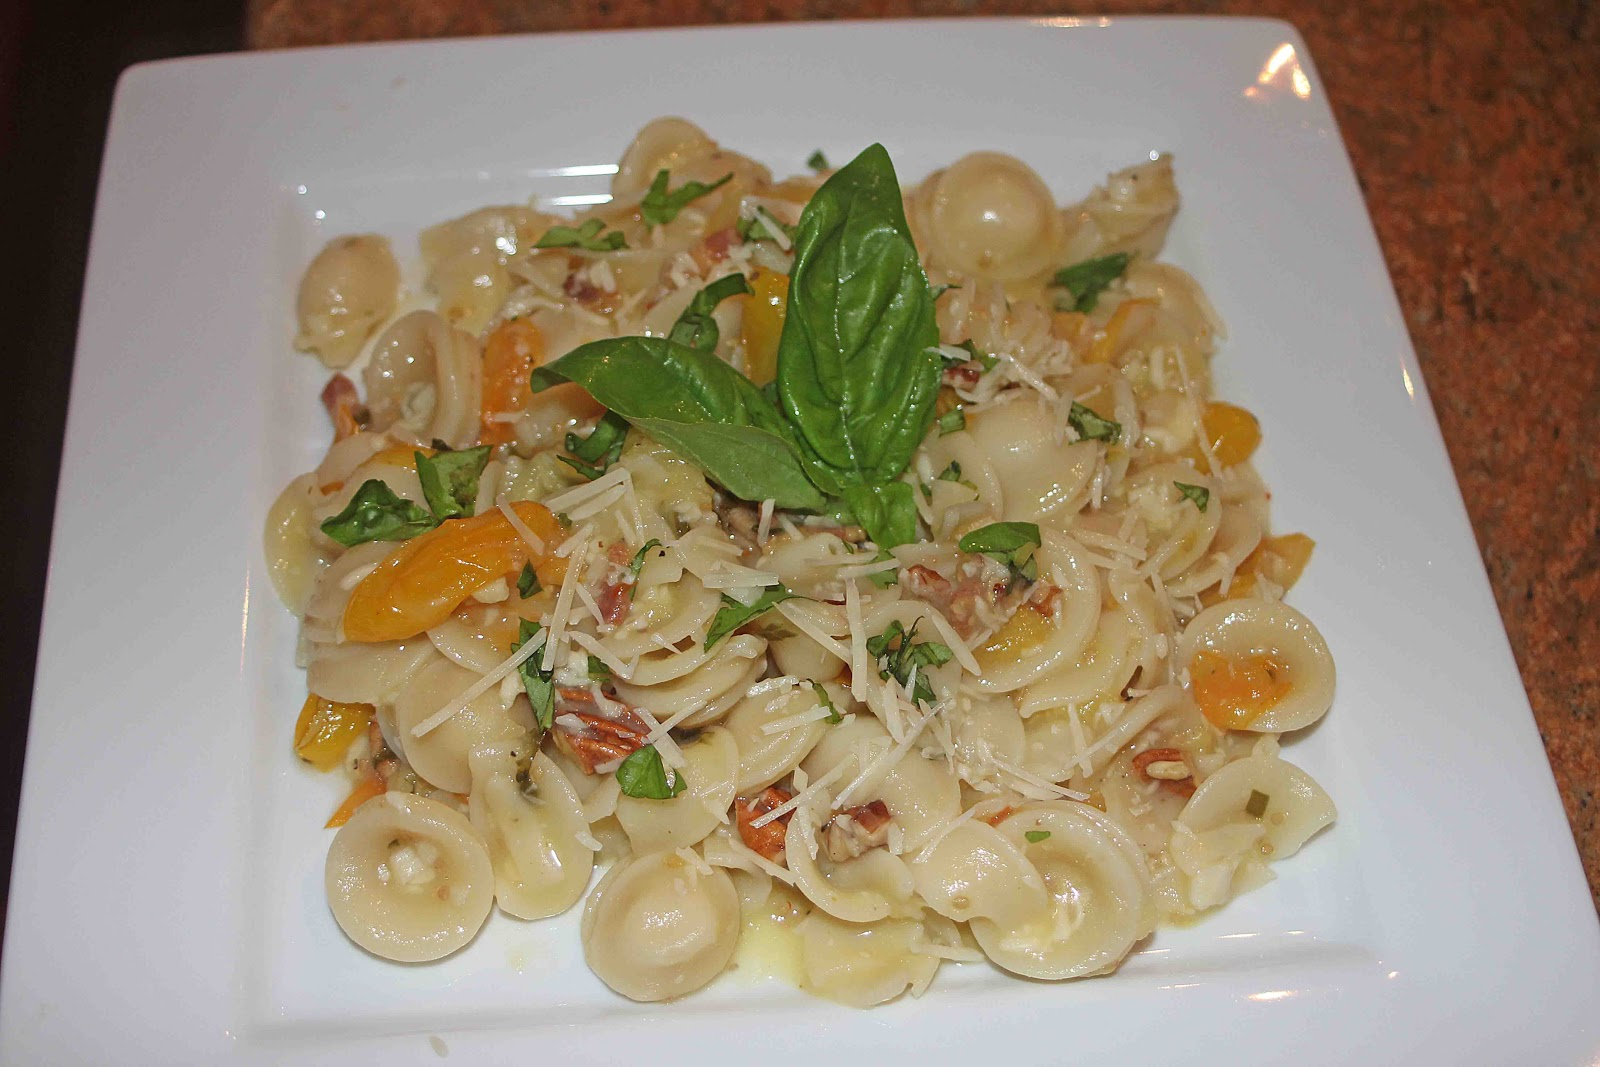 ... Orecchiette Pasta with Bacon, Yellow Pear Tomatoes, Pine Nuts & Basil